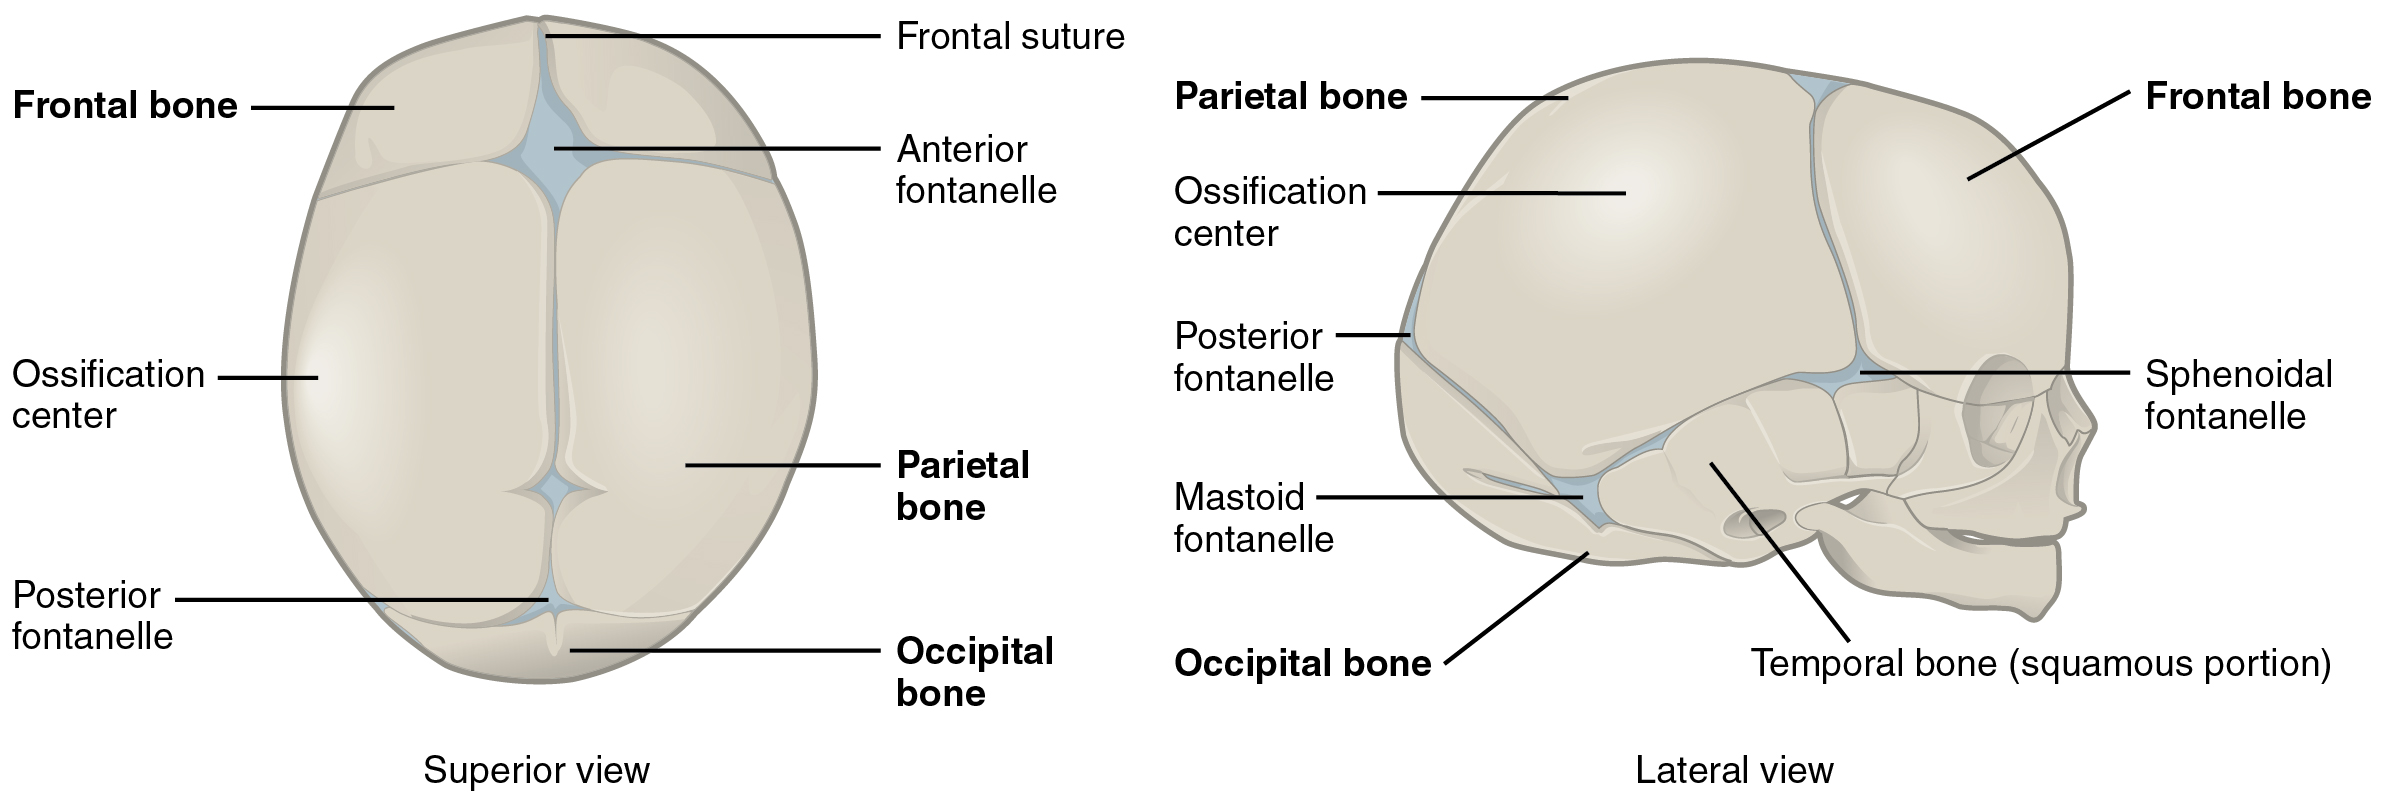 embryonic development of the axial skeleton, Cephalic vein